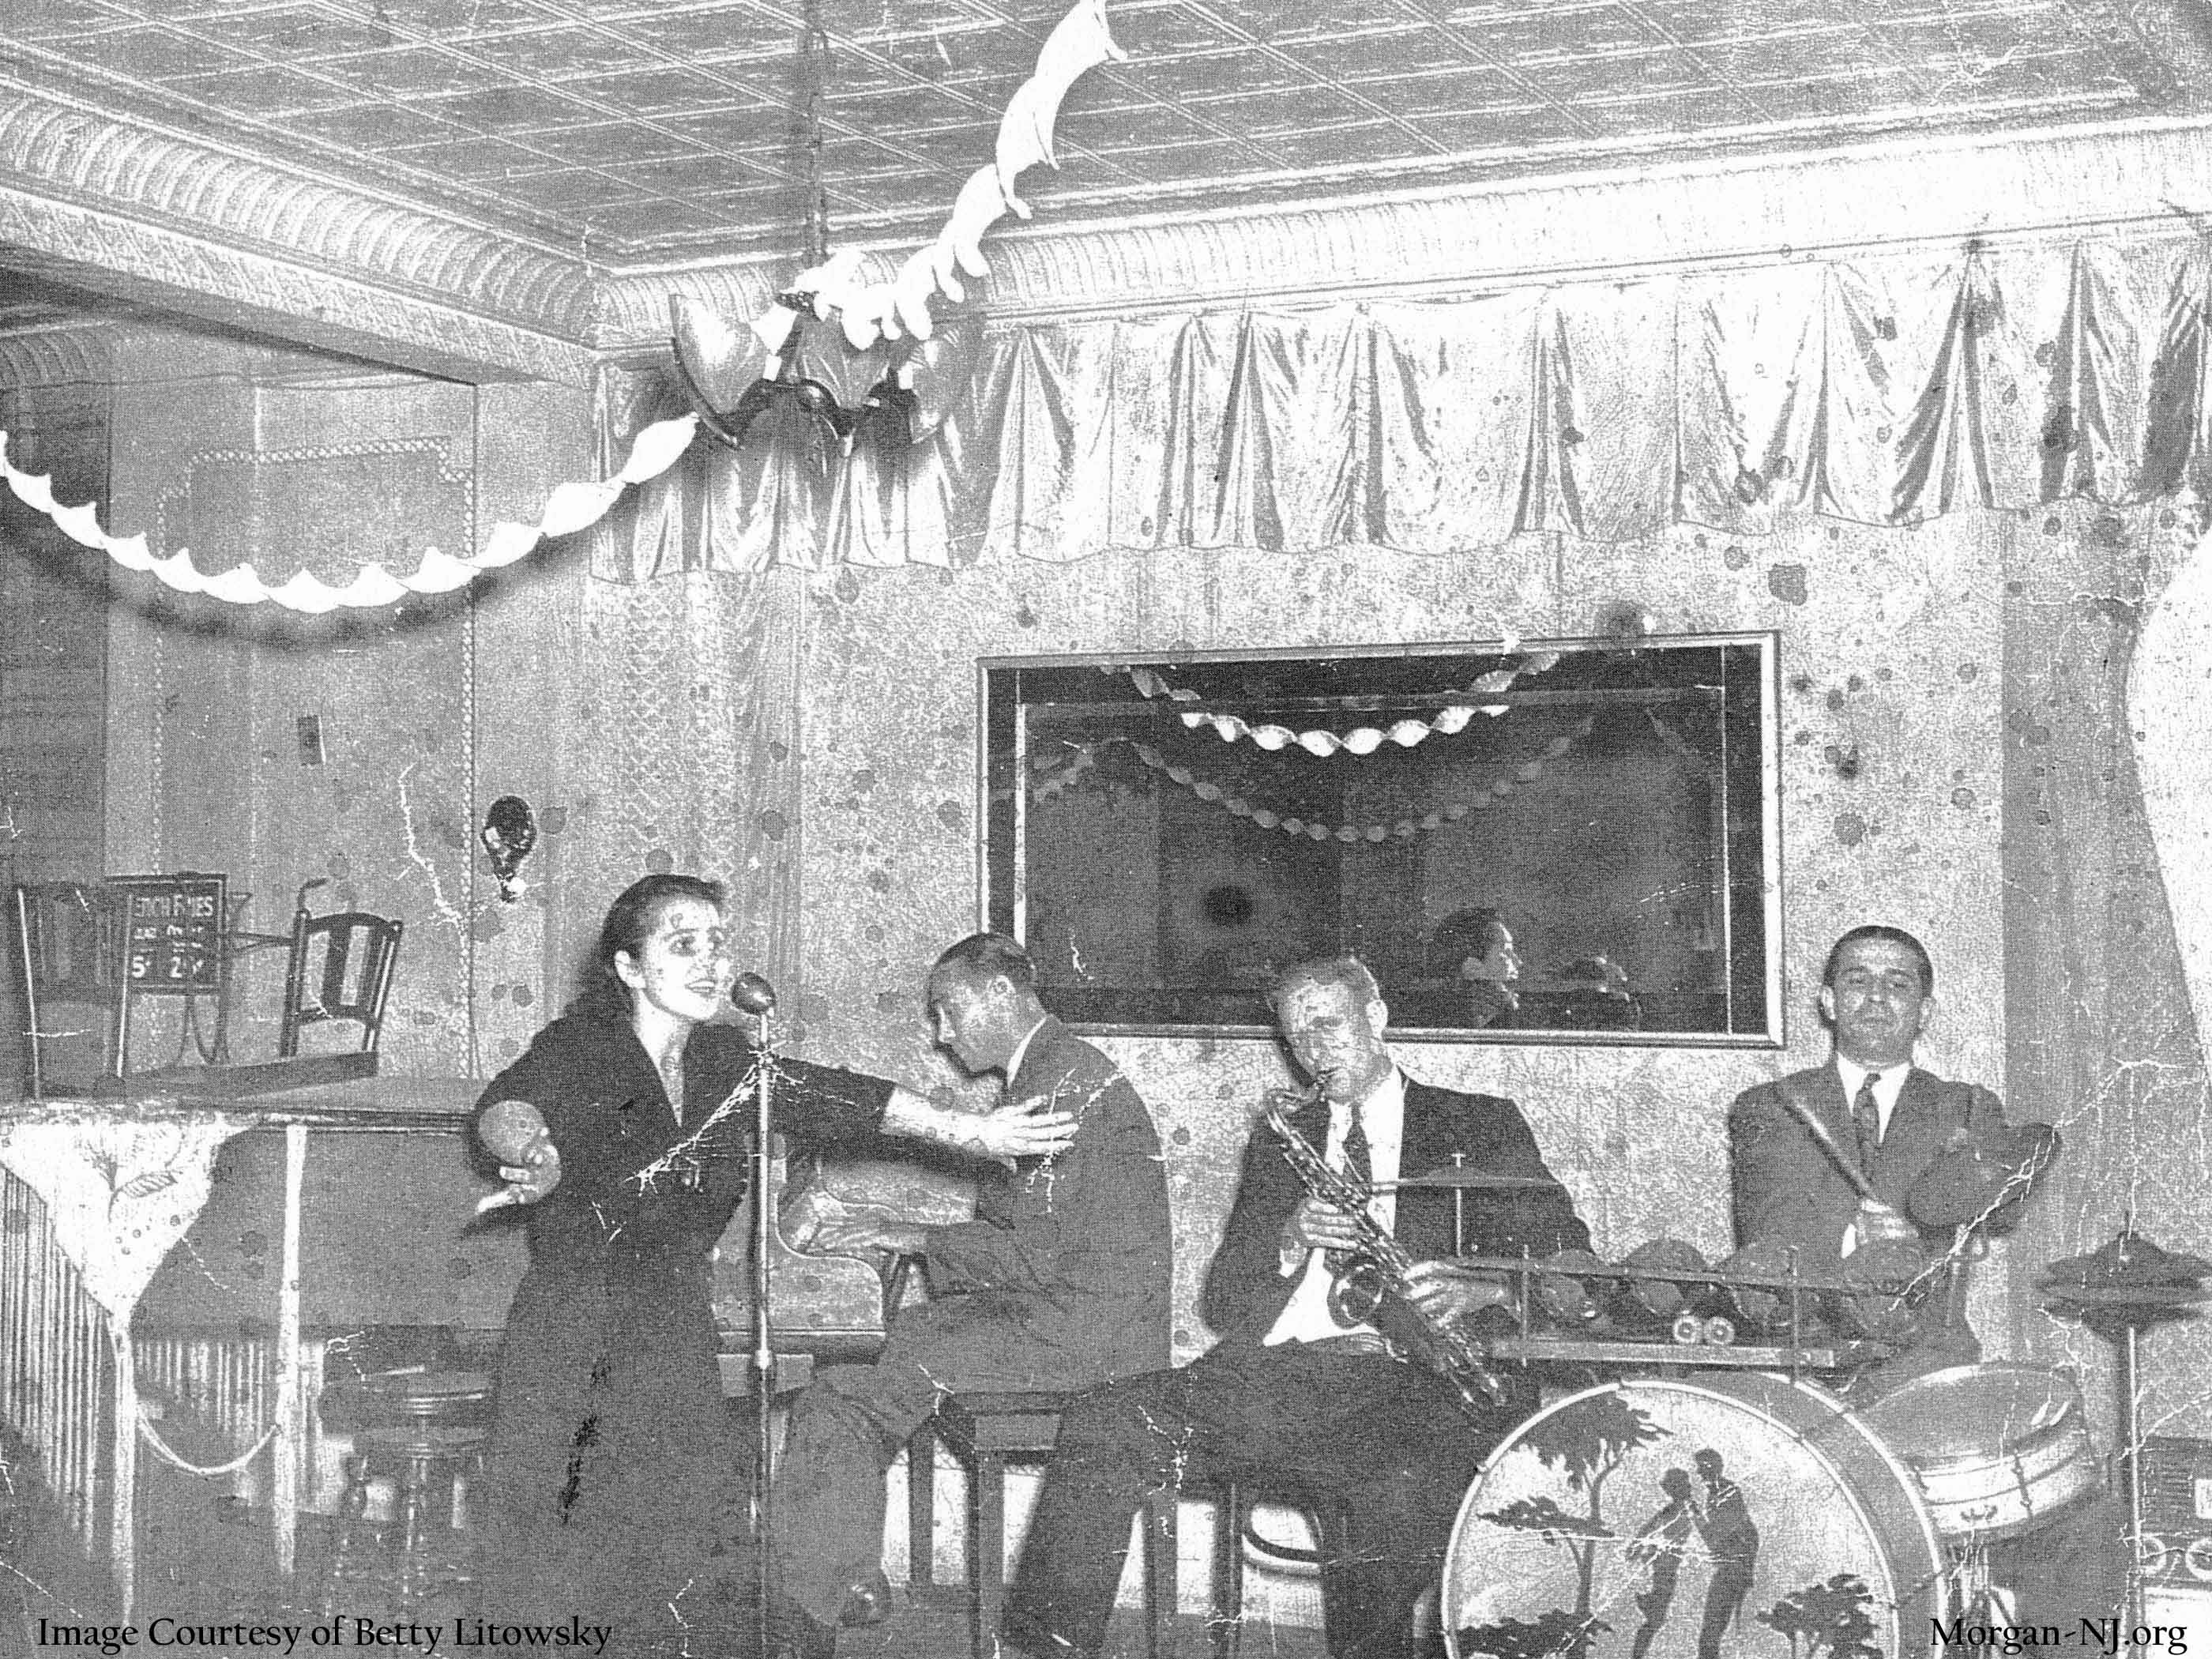 War time entertainment by Ruth Macrae singing with Billy Coleman on piano, Mike O' Brien on saxophone, and Eddie Coleman on drums, 1943. Image courtesy of Betty Macrae Litowsky.